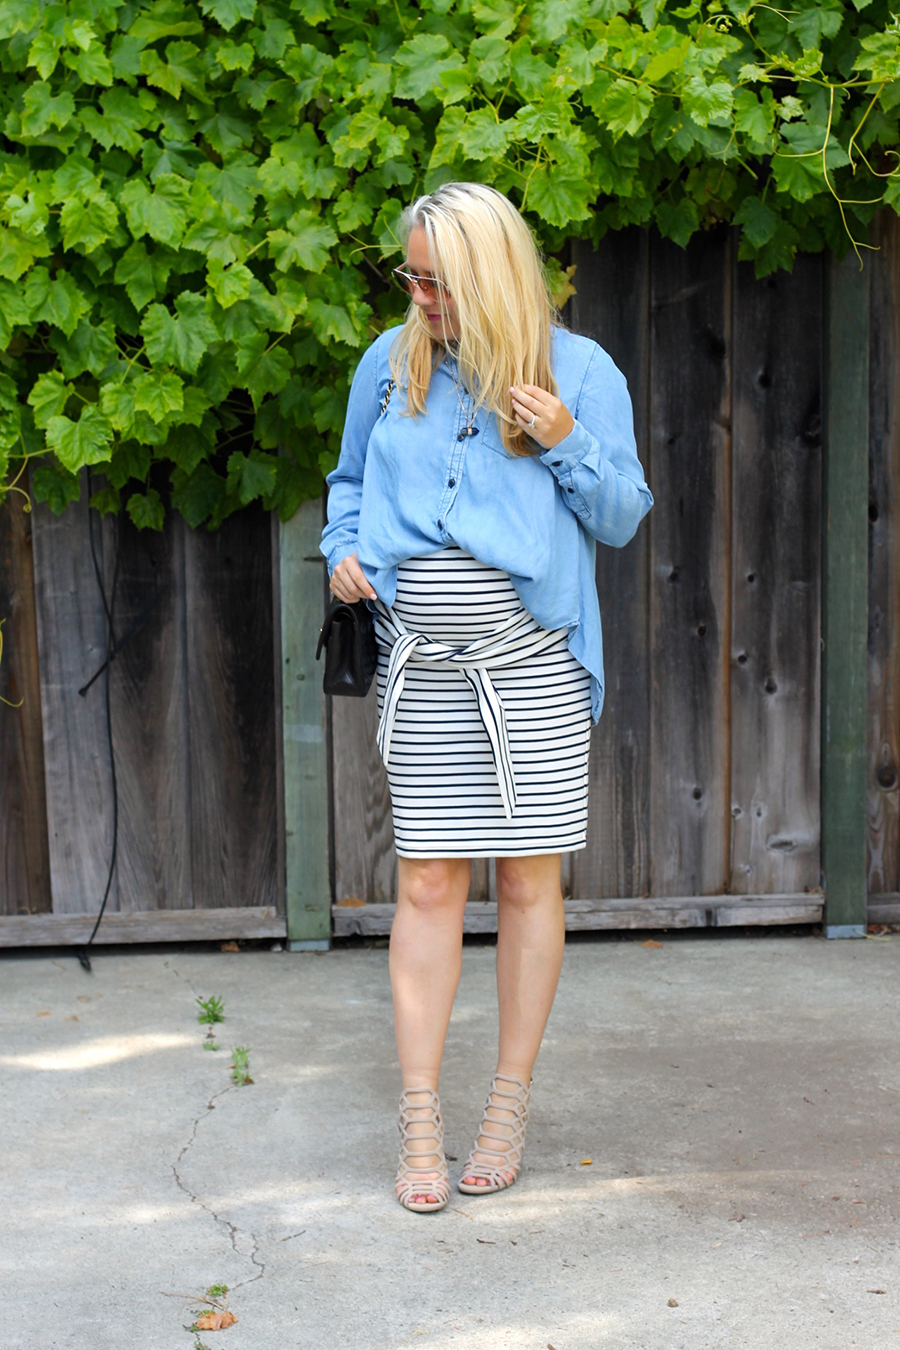 Kingdom & State-Tie Front Skirt-Maternity Style-Pregnancy Style-Chambray Top-Target Style-Have Need Want